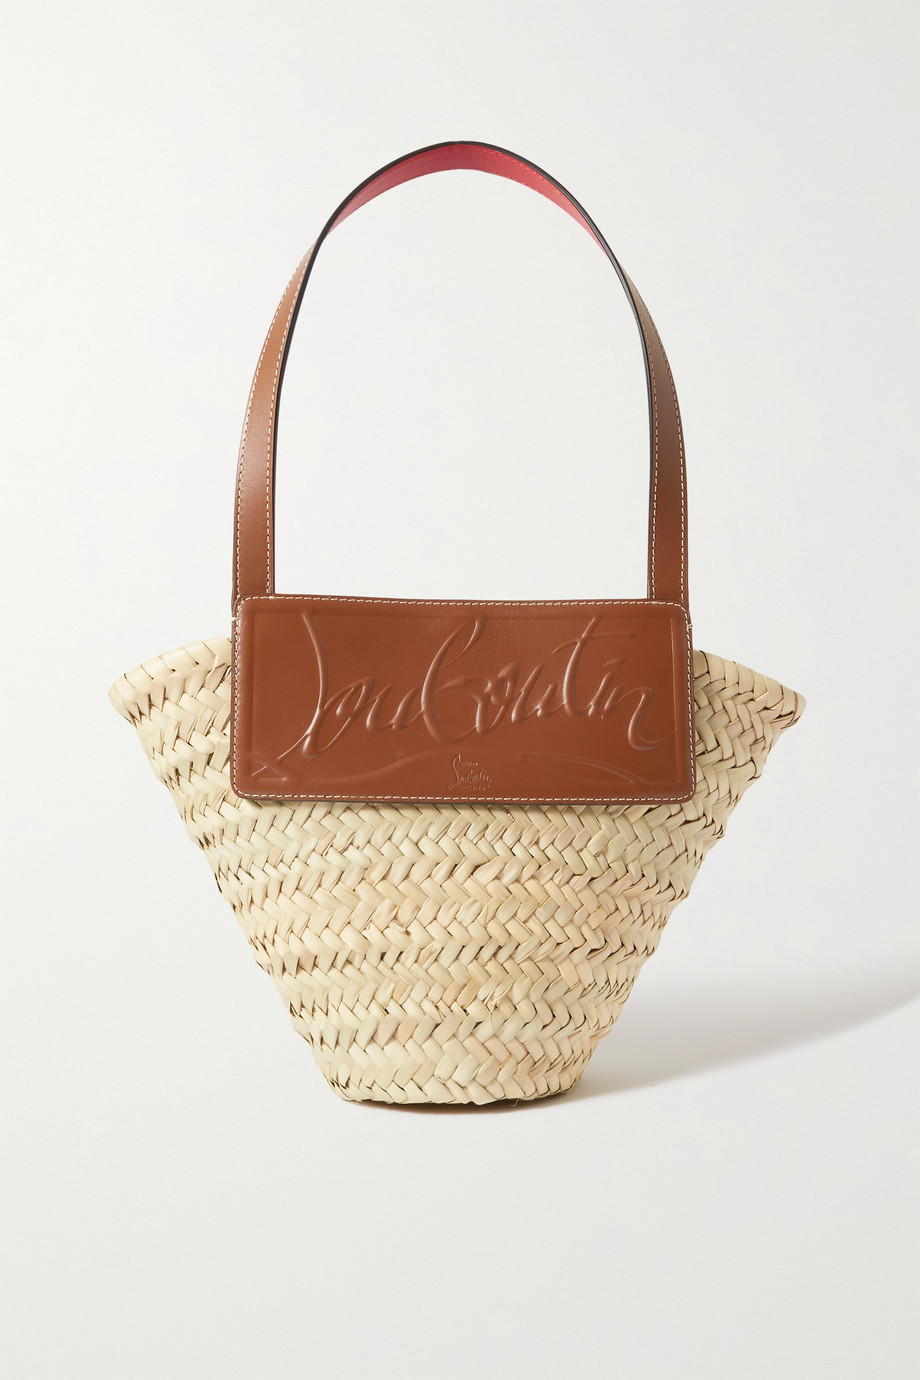 Christian Louboutin Loubishore small woven straw and embossed leather tote,Beige